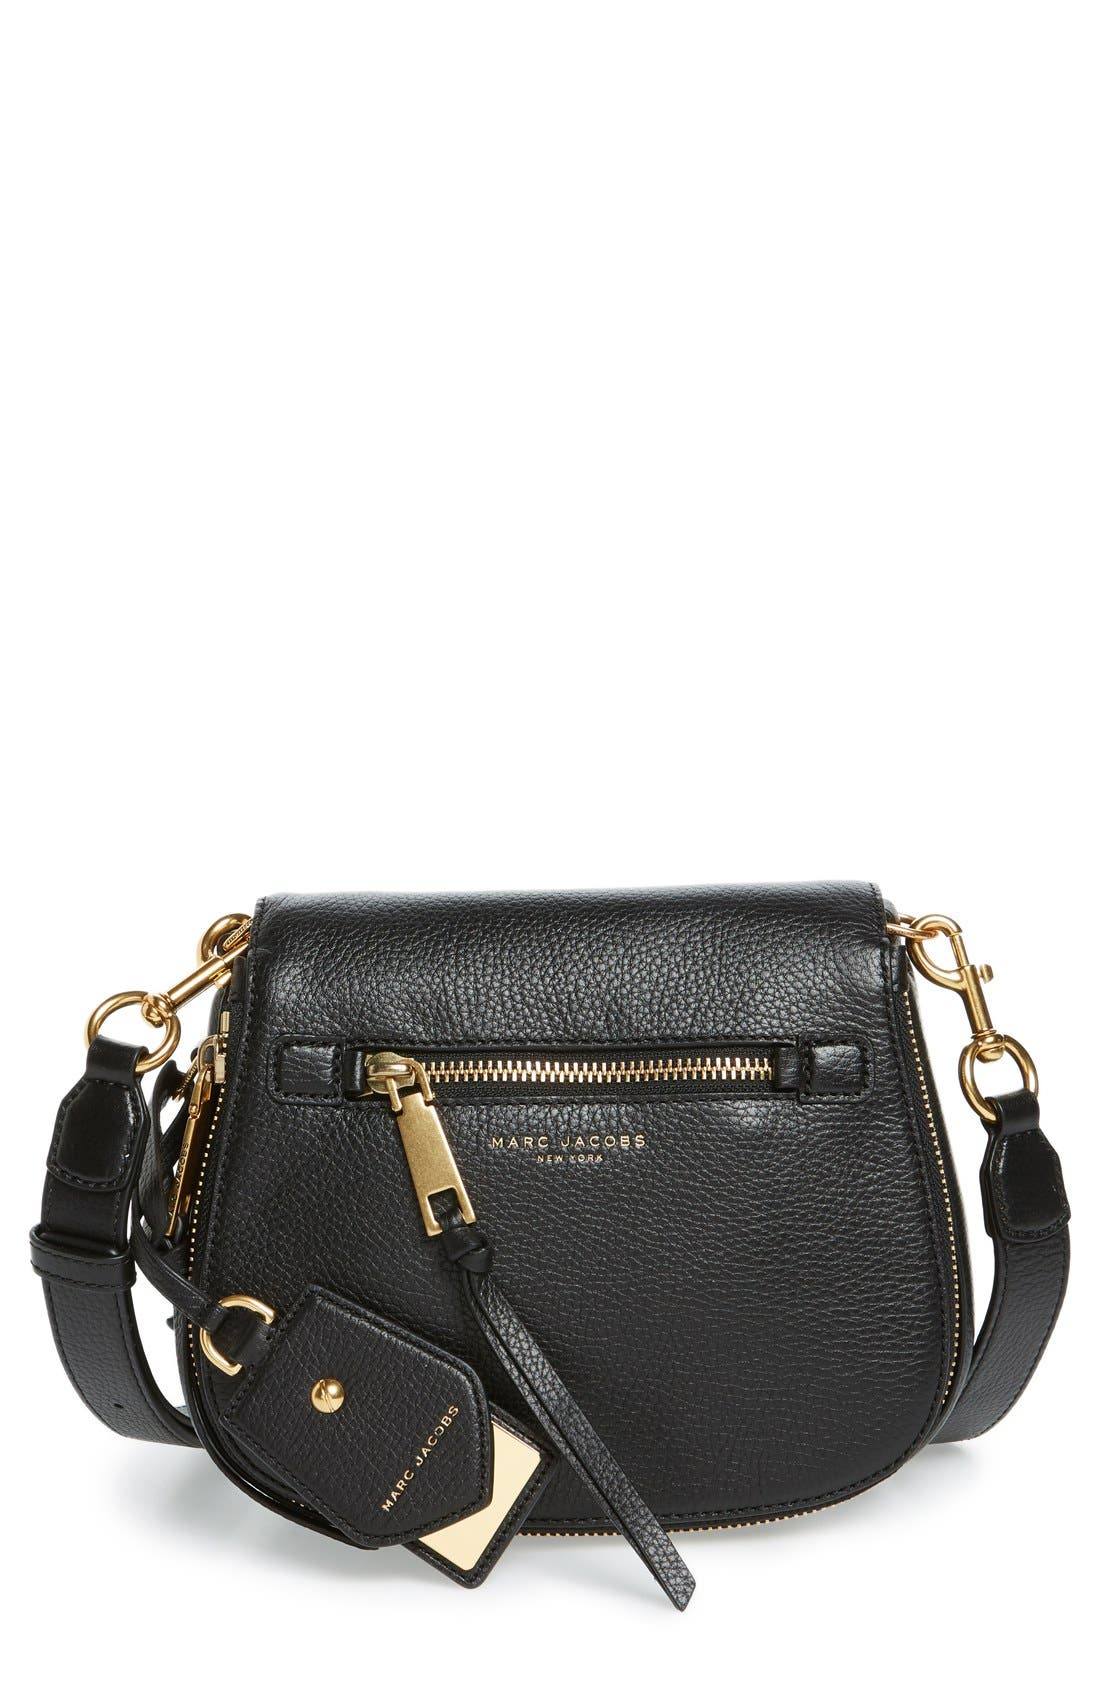 MARC JACOBS Small Recruit Nomad Pebbled Leather Crossbody Bag